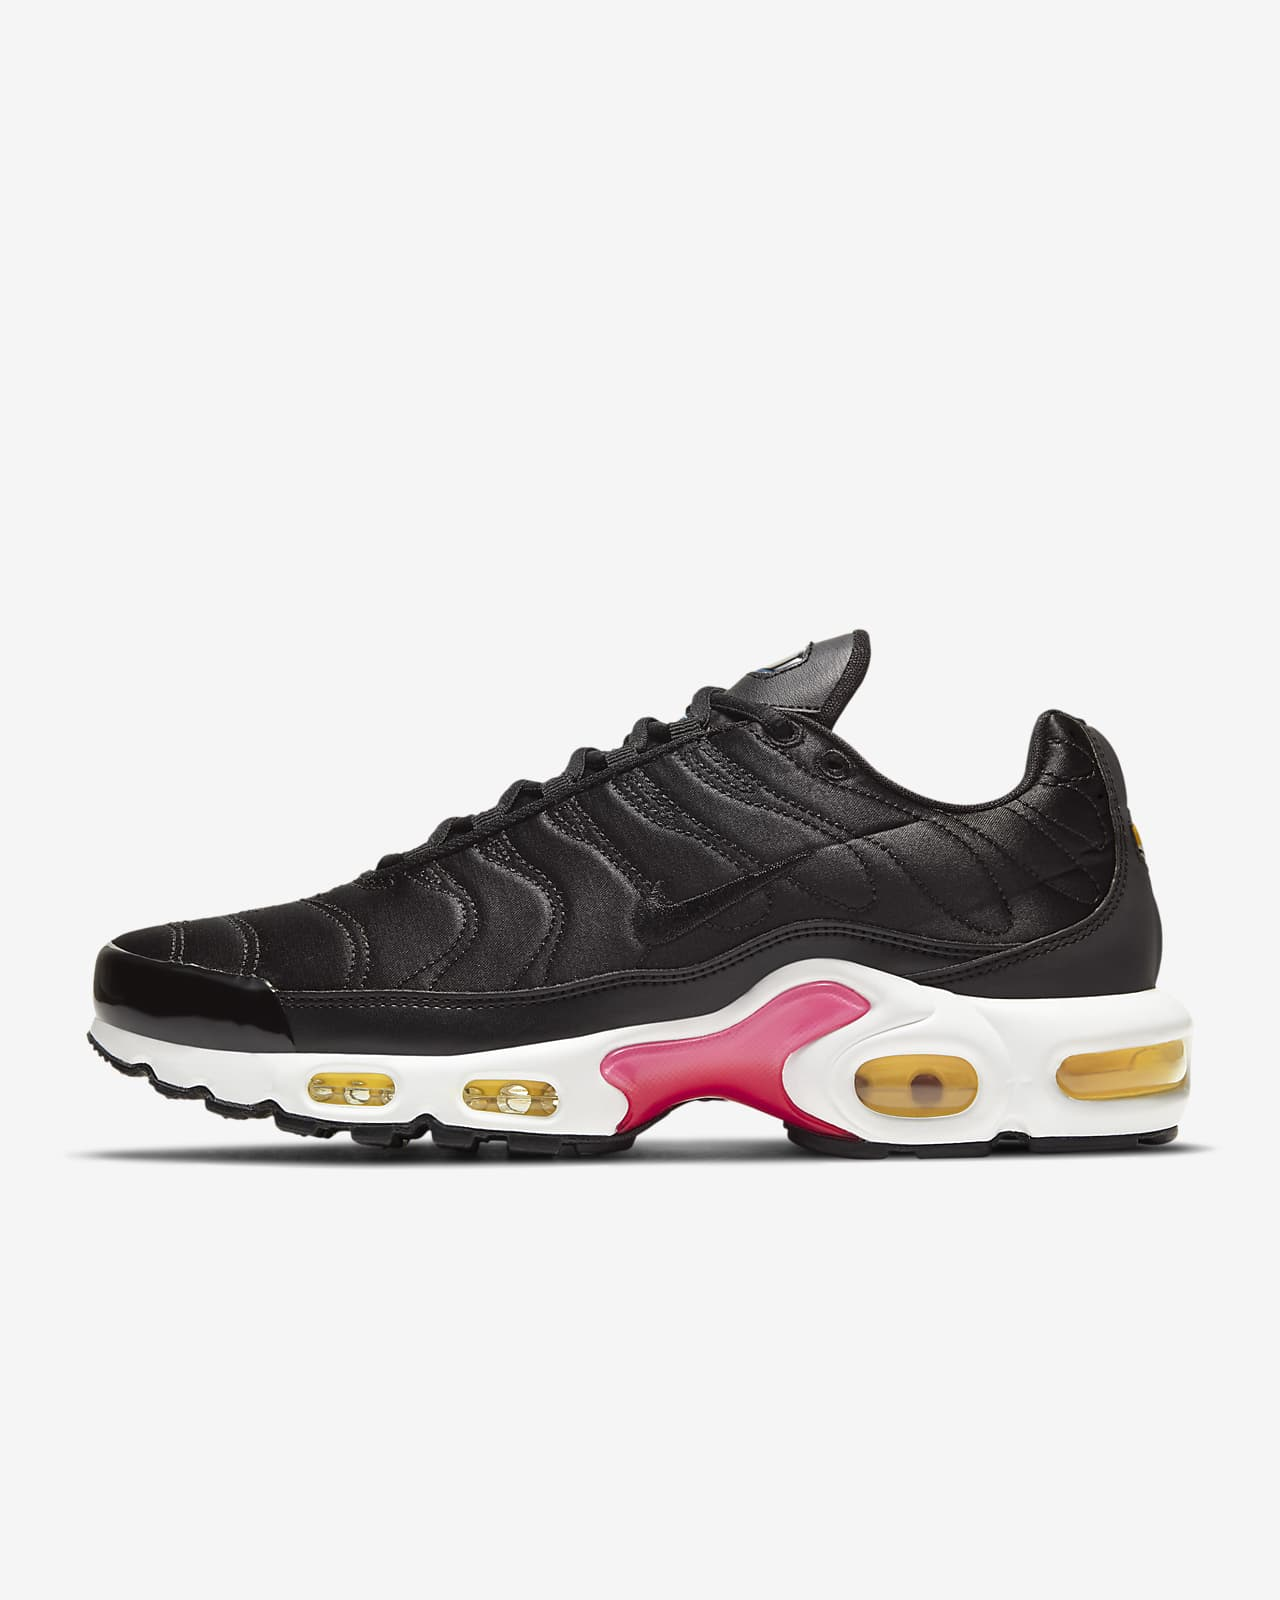 Nike Air Max Plus Women's Shoe